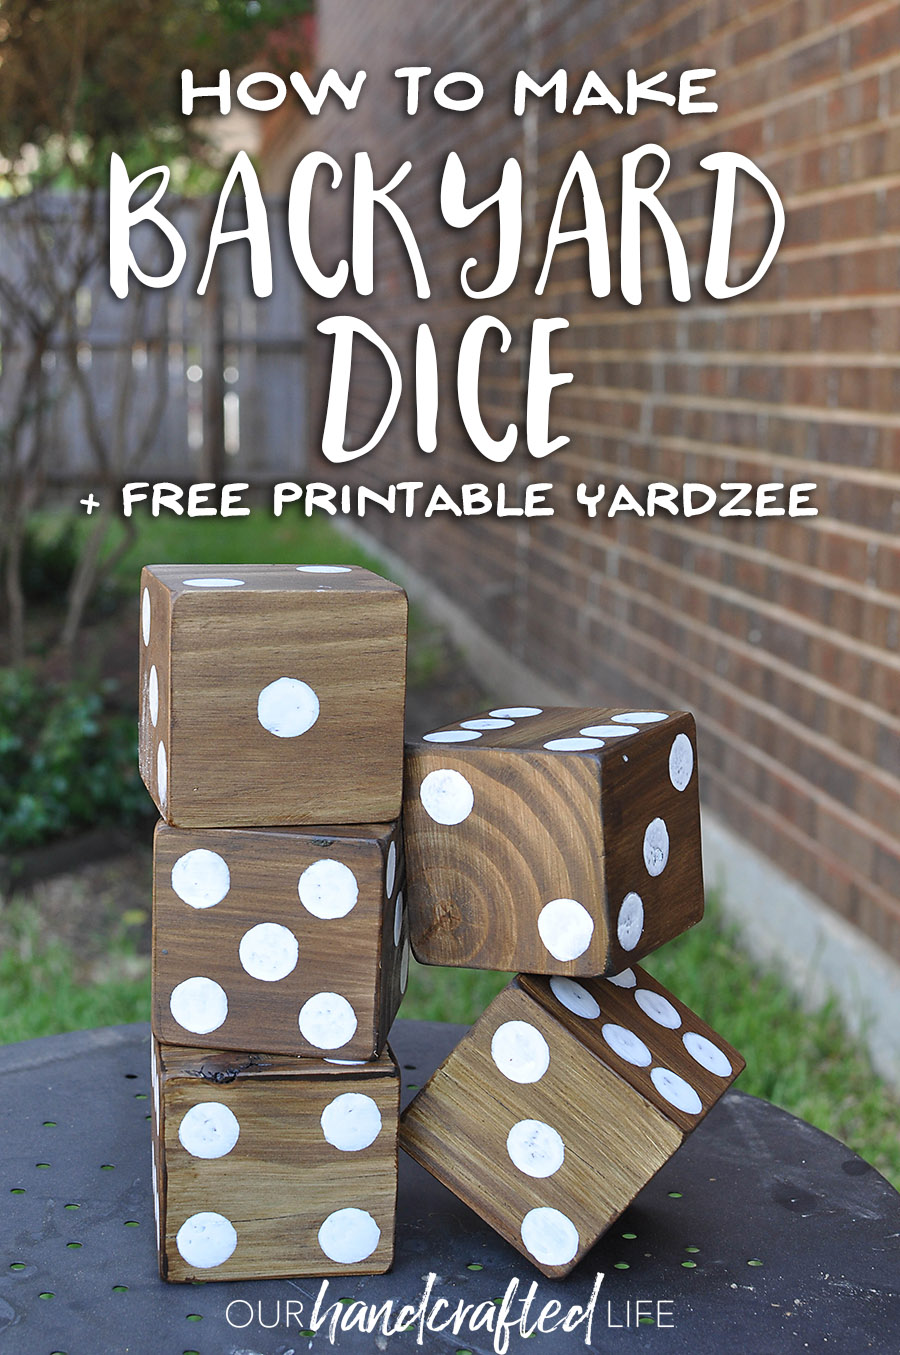 How to Make DIY Giant Yard Dice + Free Printable Yardzee - Our Handcrafted Life